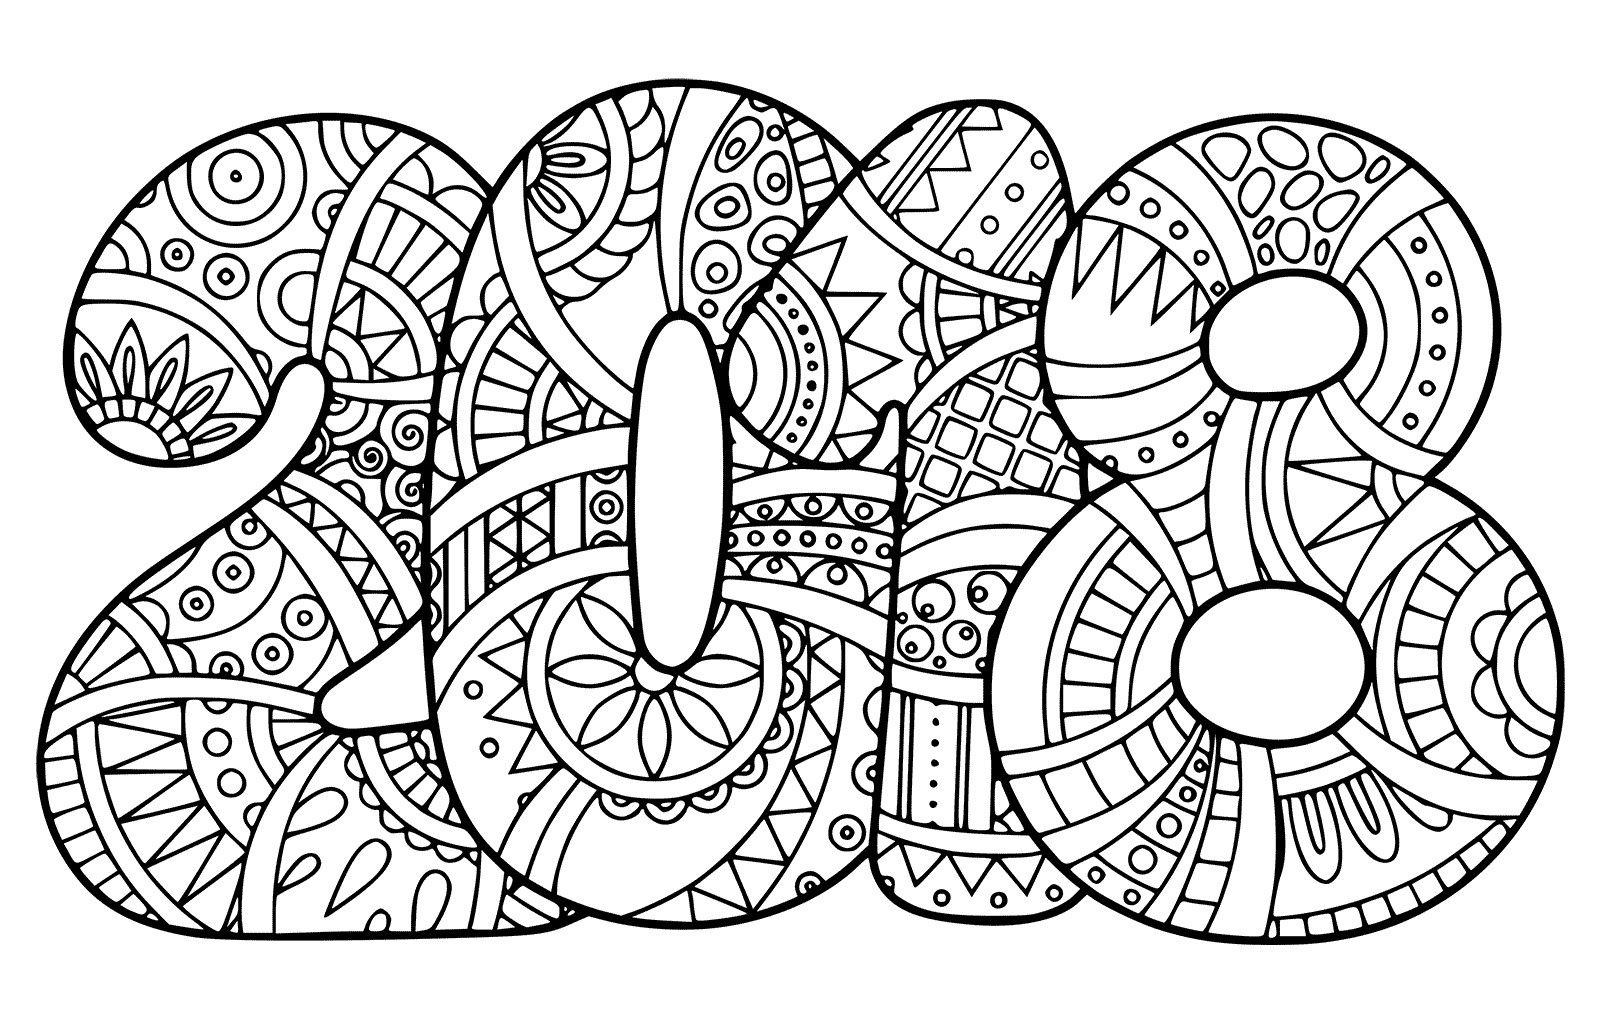 Pin By Diana Ilcheva On Coloring Pages Coloring Pages New Year